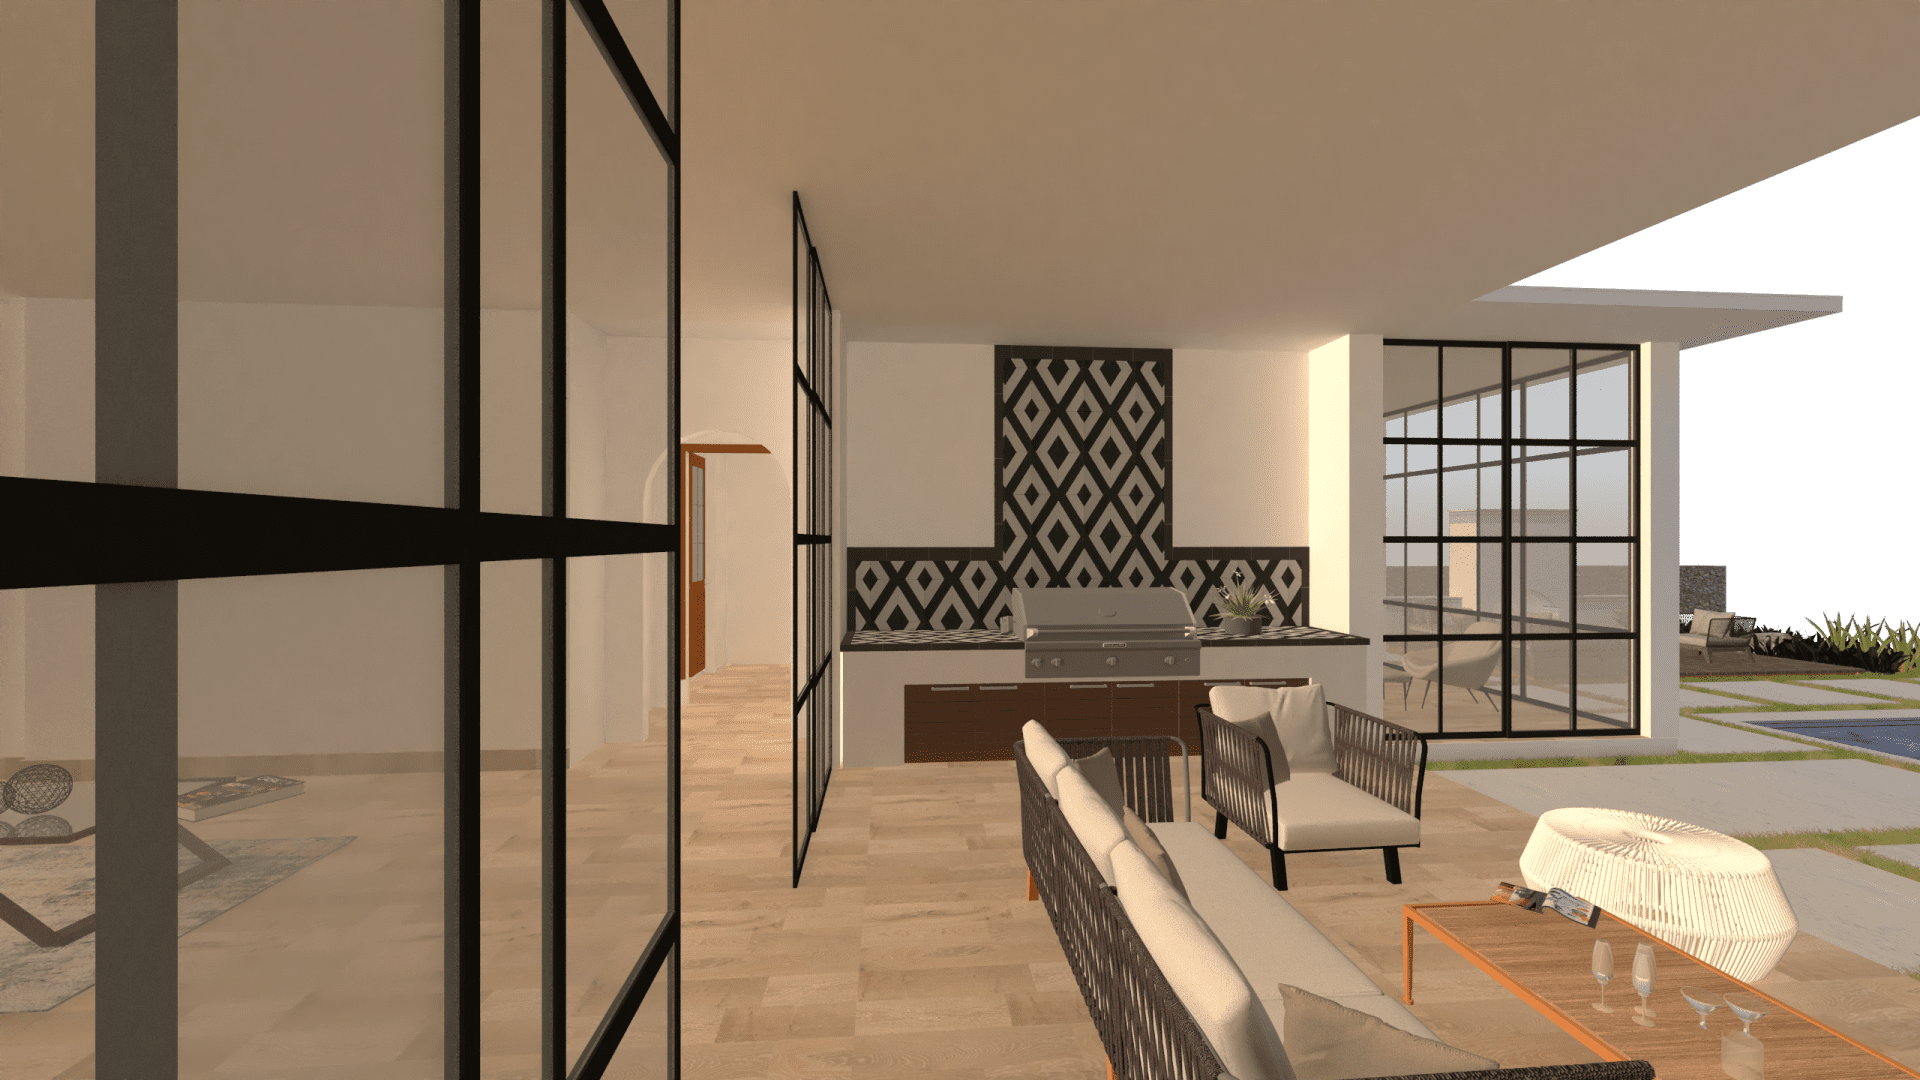 midwick grill - Millennial Design + Build, Custom Home Builders in Dallas Texas, modern style homes, Property Evaluator, Interior Designers, using BIM Technology and Home 3D Model.